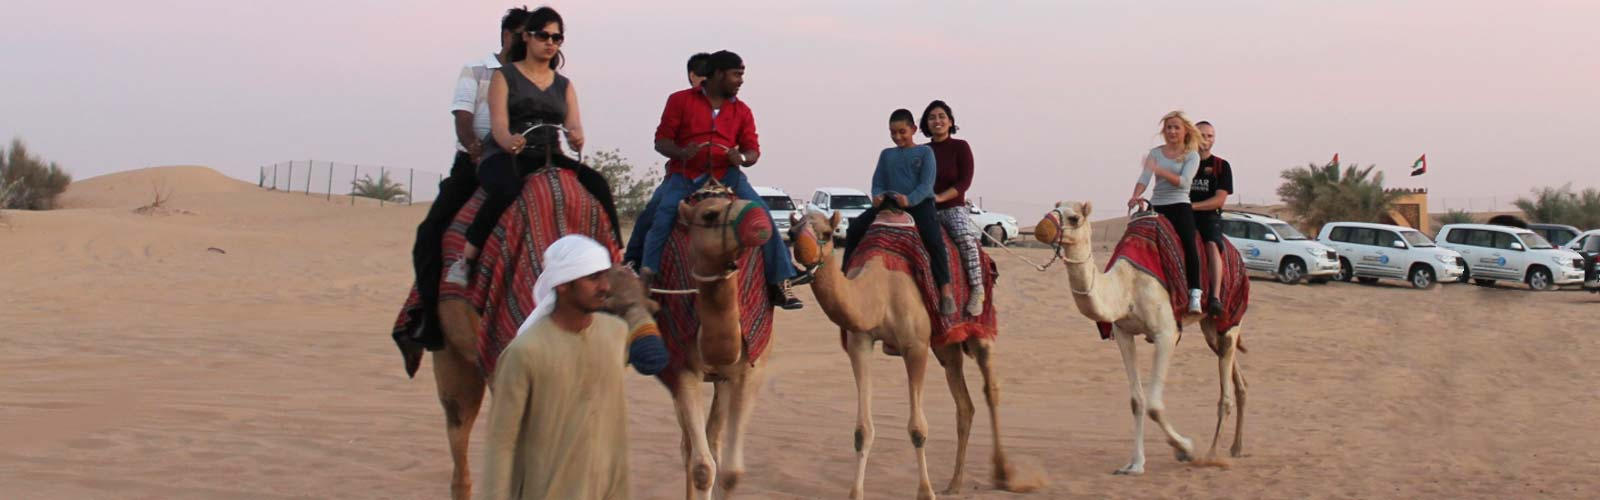 Camel Safari Adventure Tour Book and Get Confirmation Online